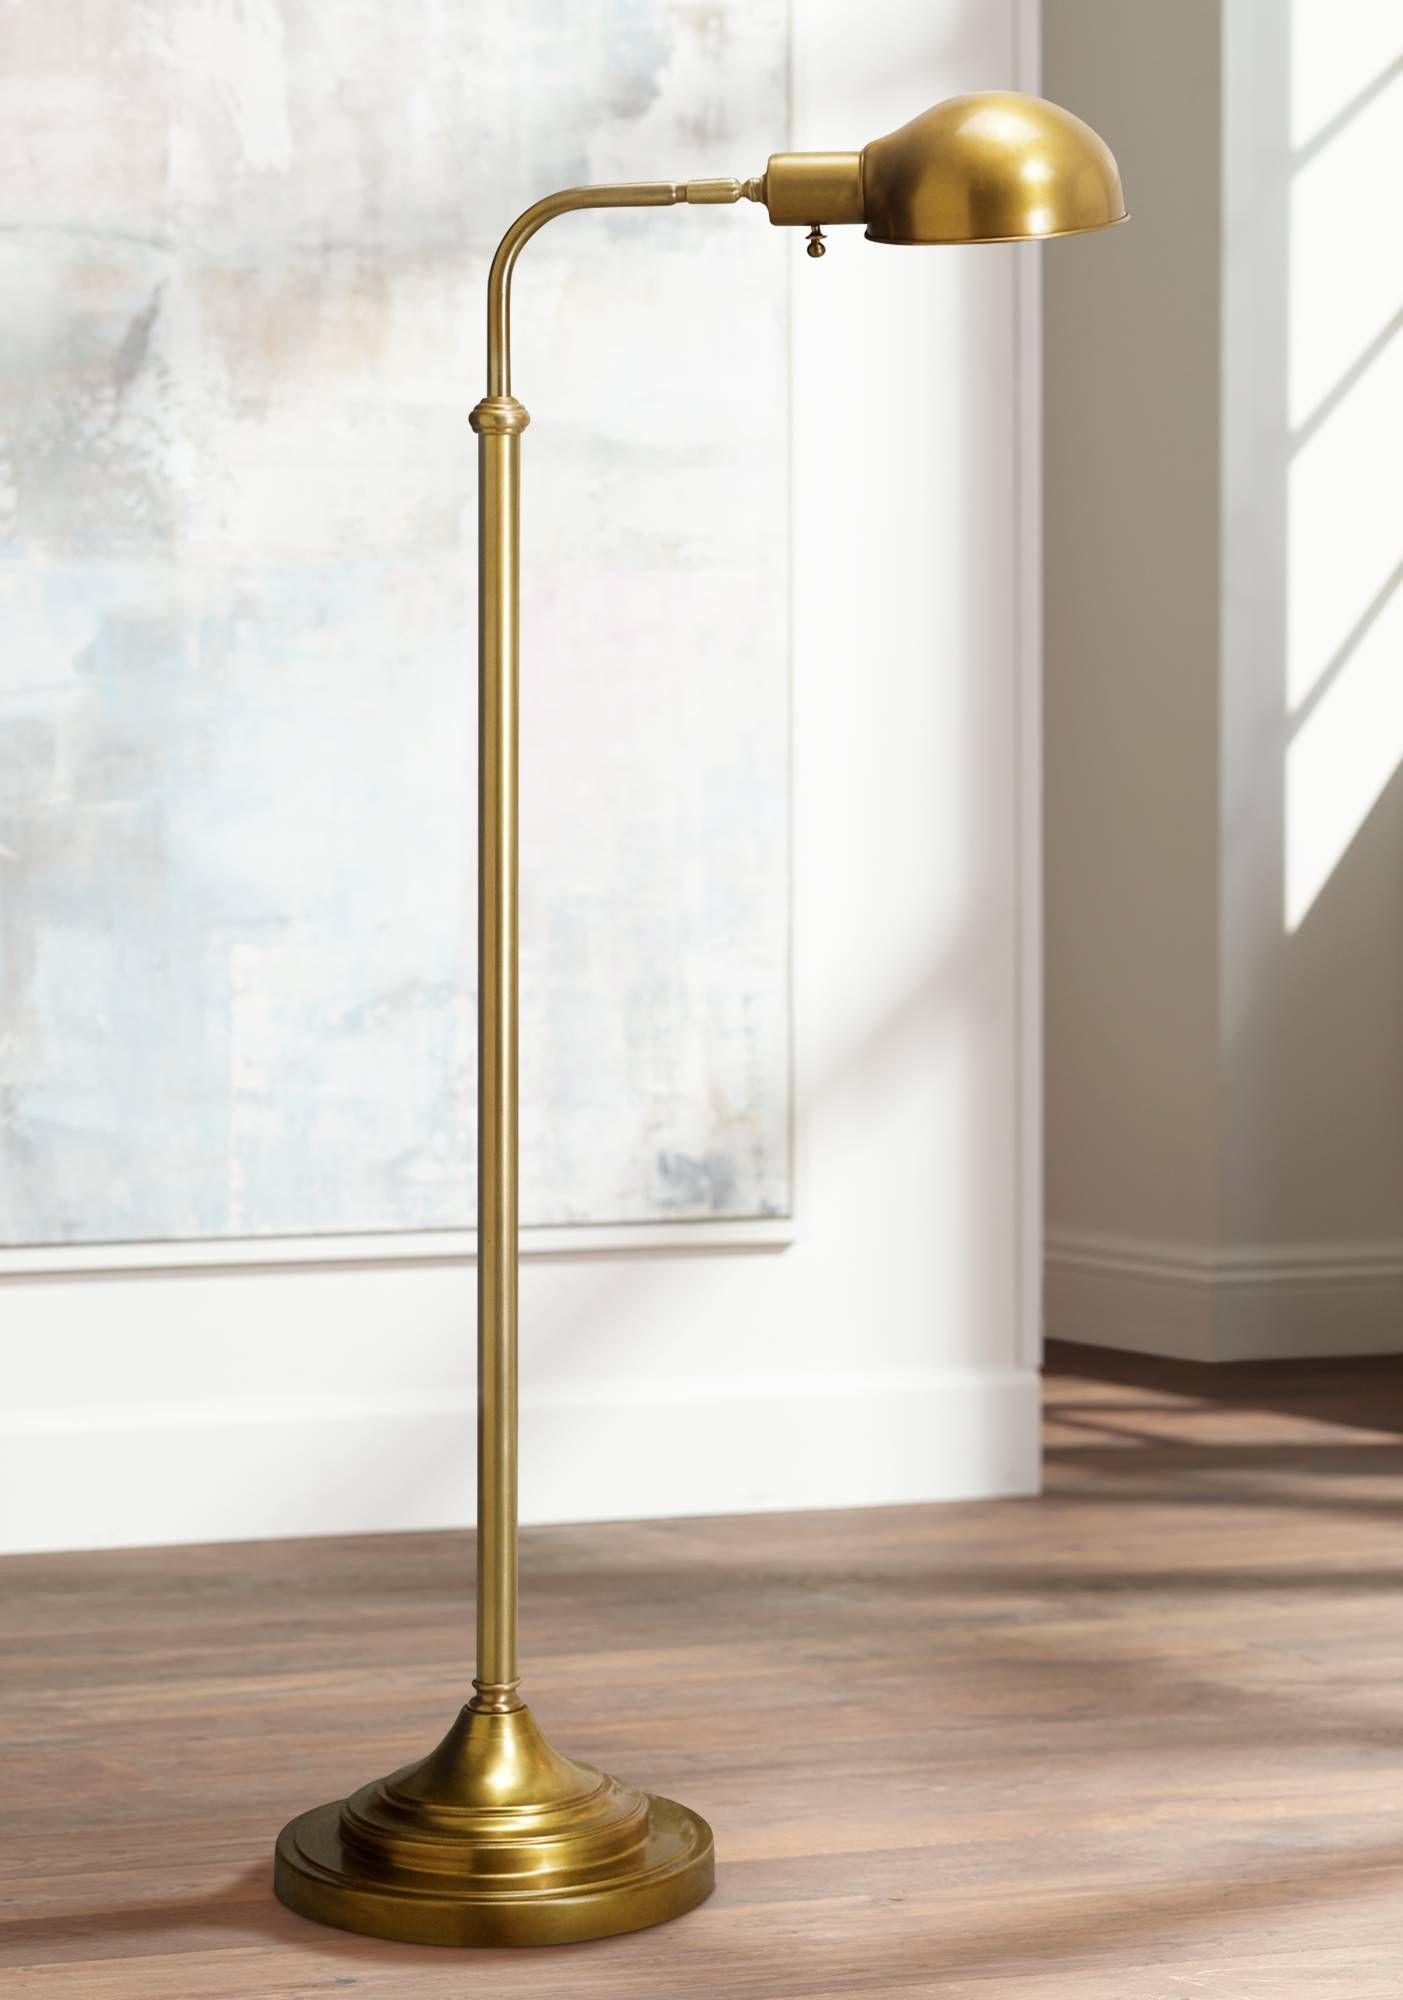 Robert abbey kinetic antique brass pharmacy floor lamp